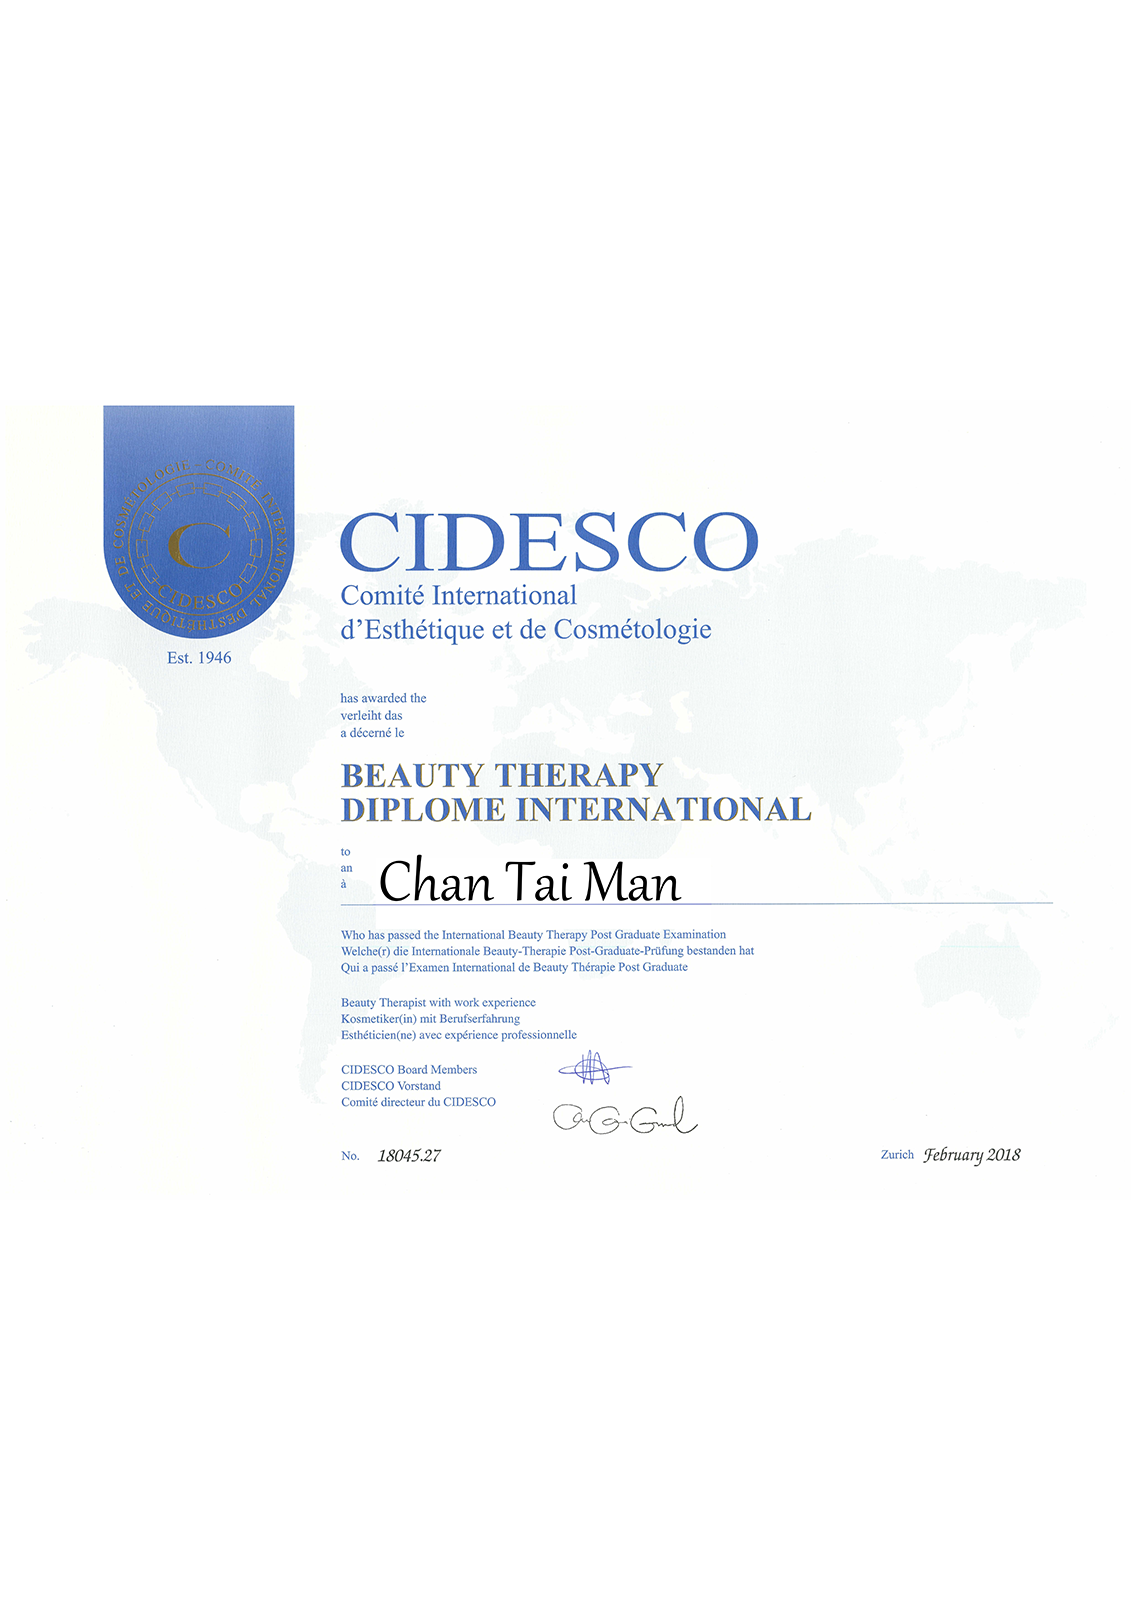 CIDESCO_beauty_therapy